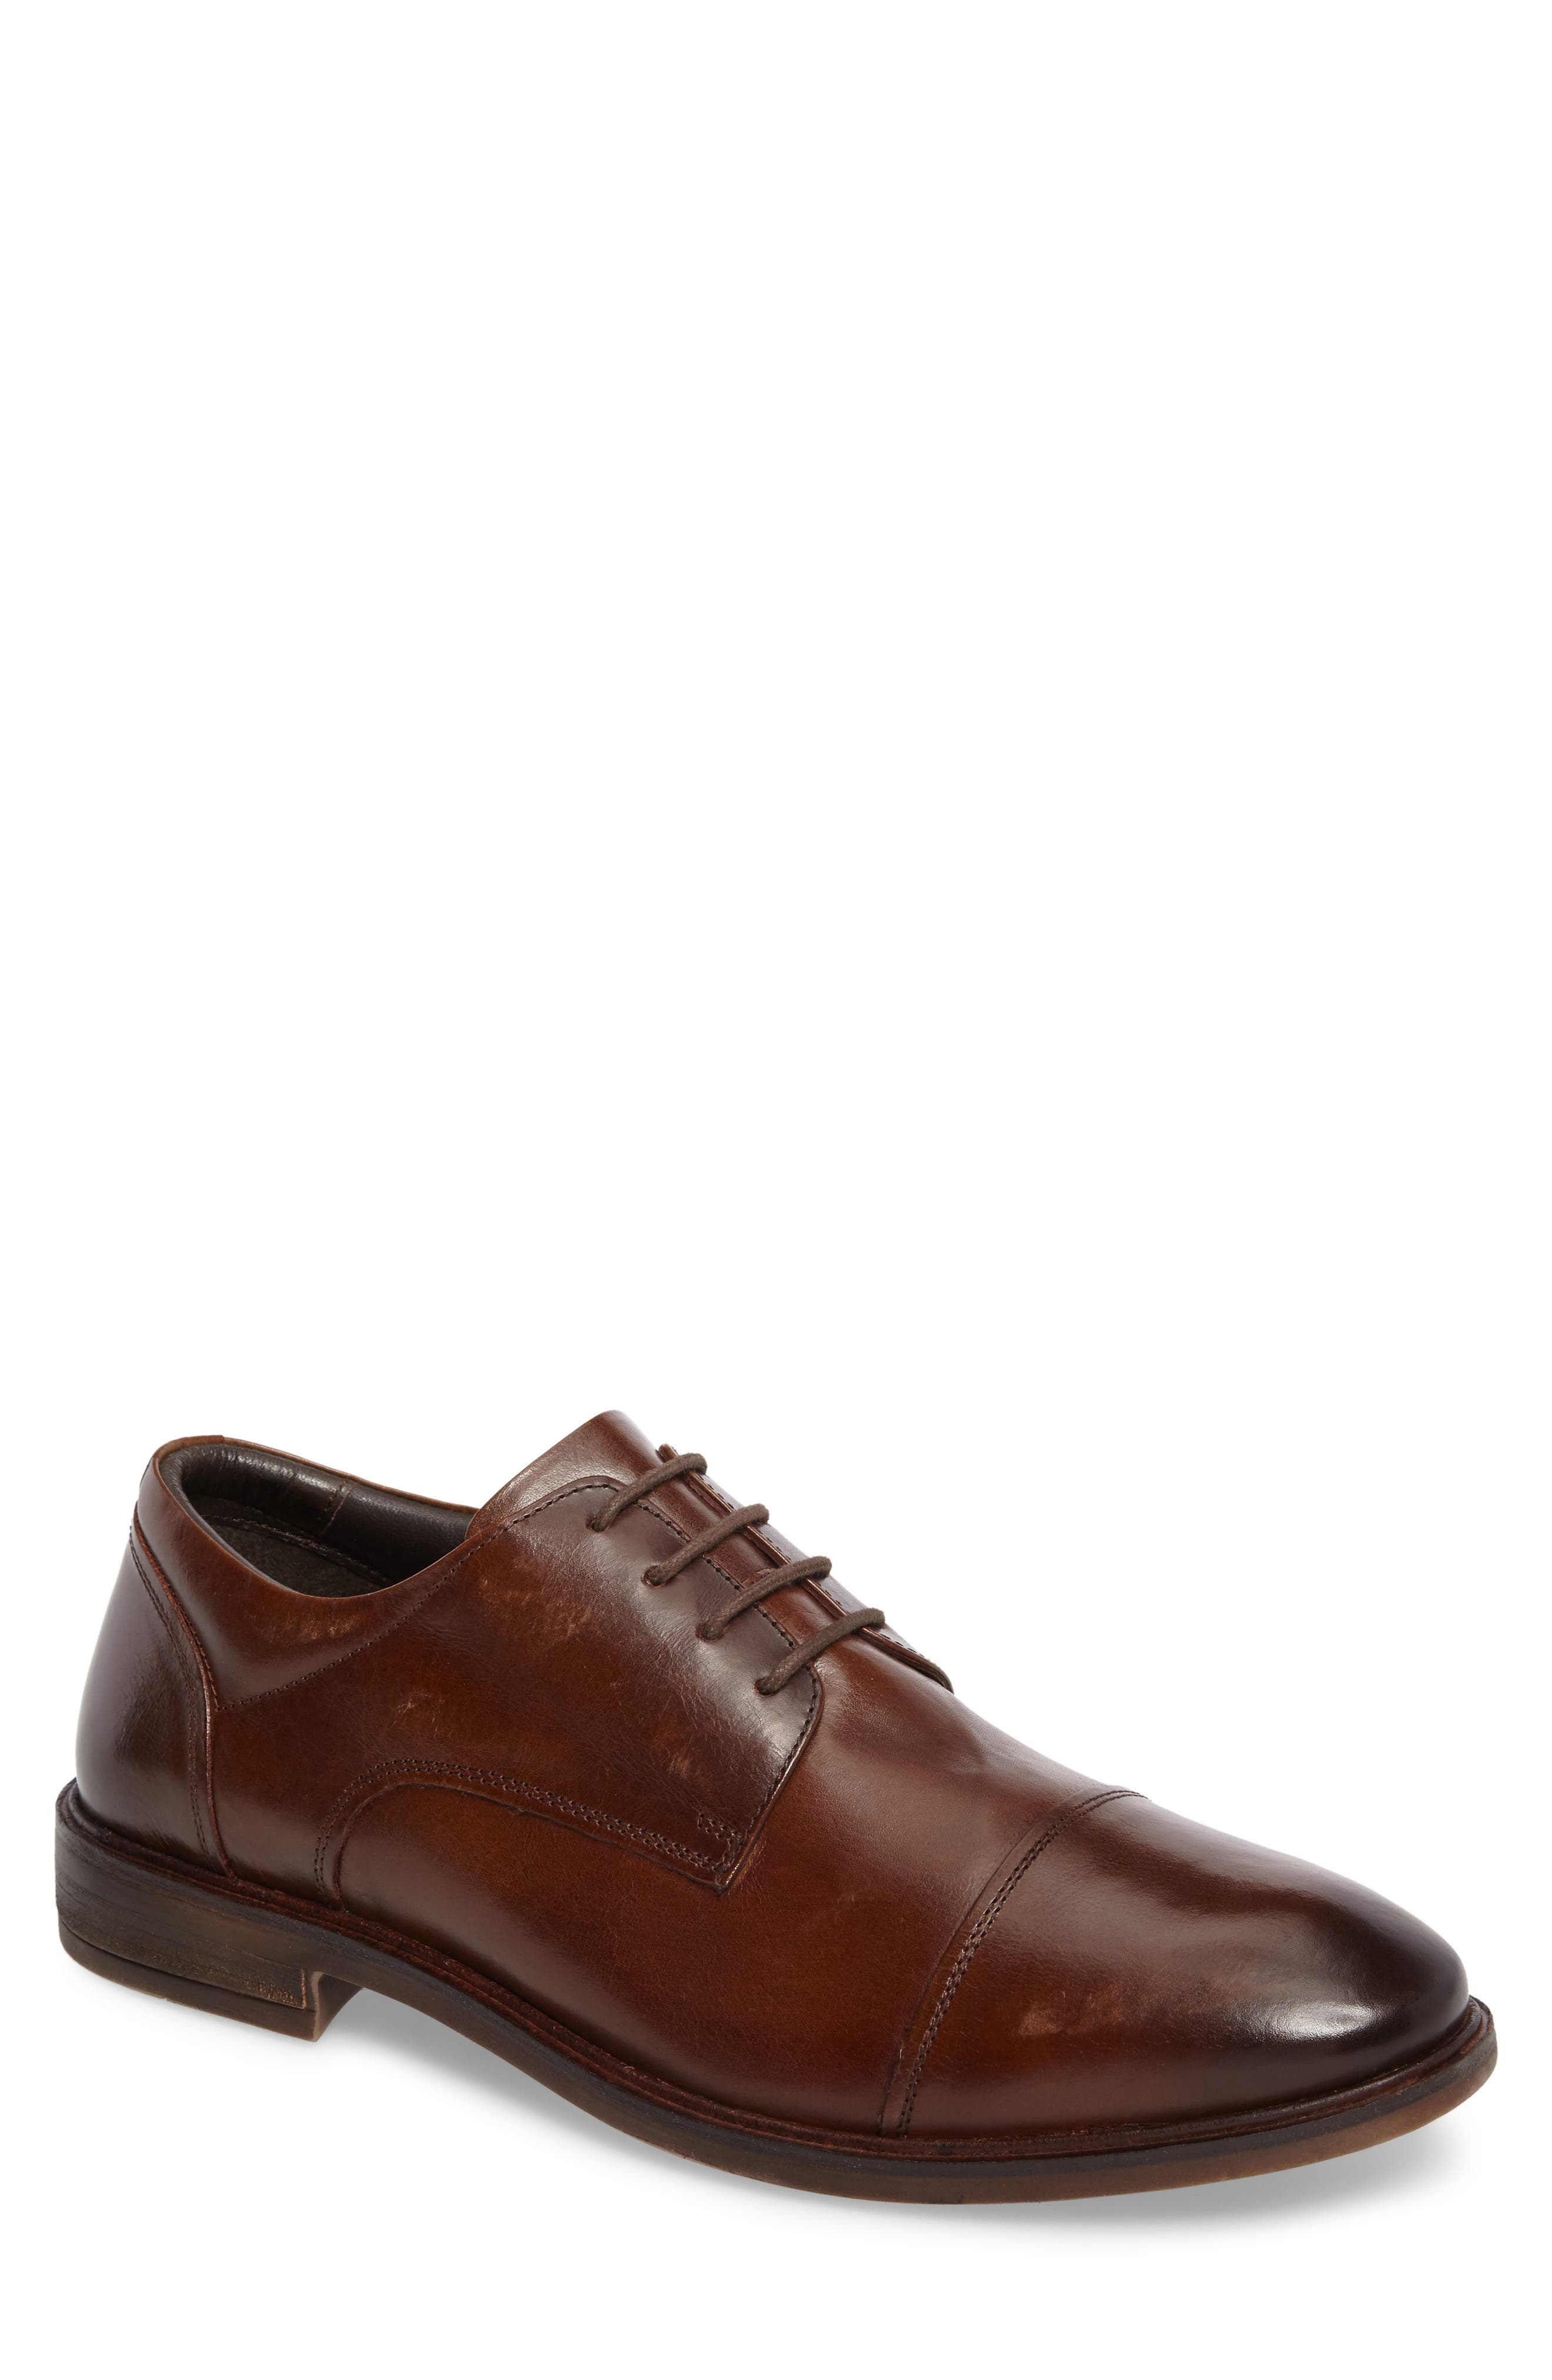 Josef Seibel Myles 19 Water Repellent Cap Toe Derby (Men)